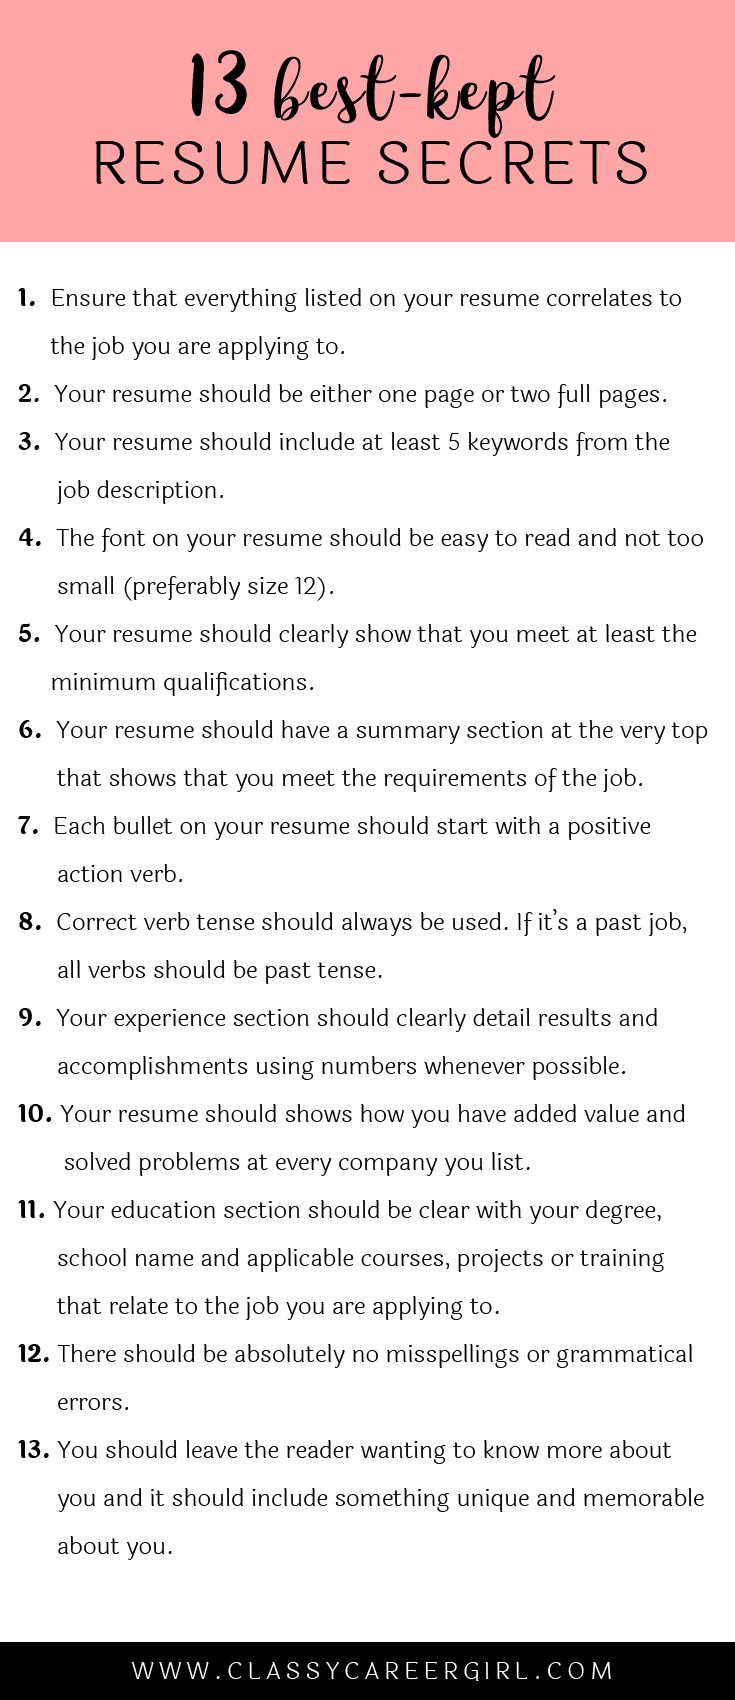 Opposenewapstandardsus  Personable  Ideas About Resume On Pinterest  Cv Format Resume Cv And  With Magnificent Some Hiring Managers Will Toss Your Resume Out If You Dont Know These  With Adorable Career Management Resume Services Also Resume Dental Assistant In Addition Resume Technical Skills Examples And Resume Skills Sample As Well As Sample Pharmacy Technician Resume Additionally Is Resume Help Free From Pinterestcom With Opposenewapstandardsus  Magnificent  Ideas About Resume On Pinterest  Cv Format Resume Cv And  With Adorable Some Hiring Managers Will Toss Your Resume Out If You Dont Know These  And Personable Career Management Resume Services Also Resume Dental Assistant In Addition Resume Technical Skills Examples From Pinterestcom